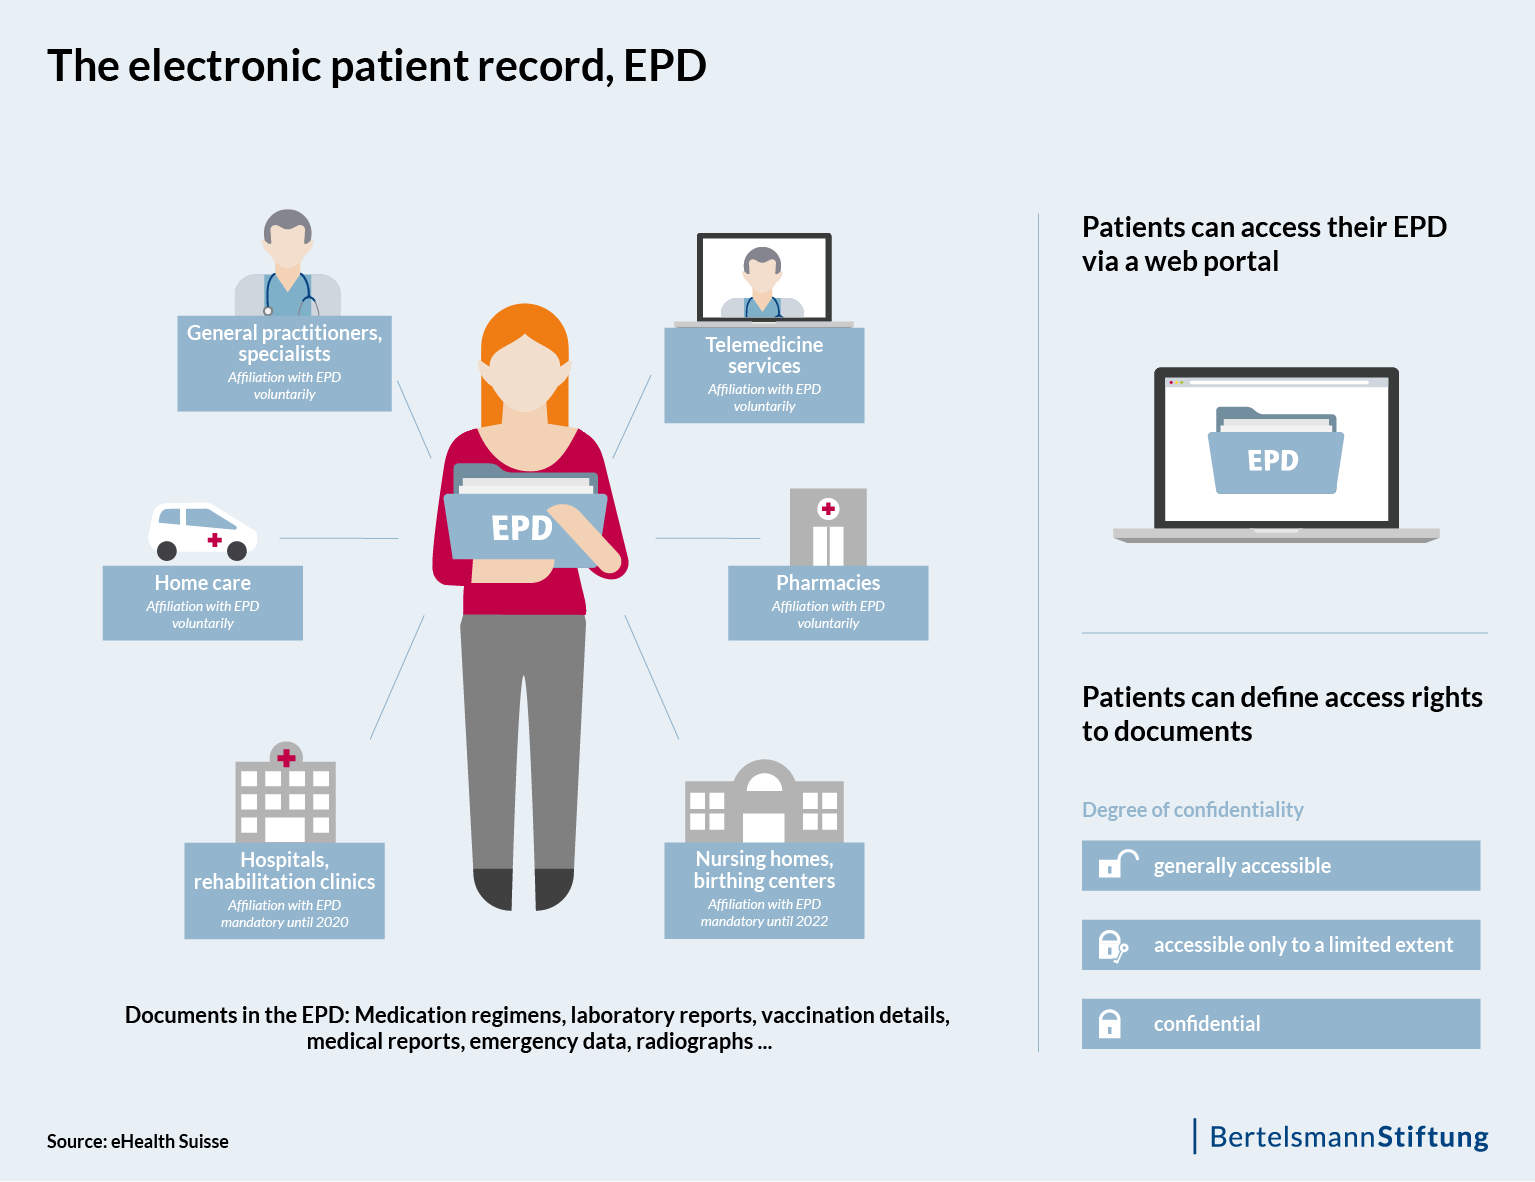 Description of the electronic patient record (Elektronisches Patientendossier, EPD)